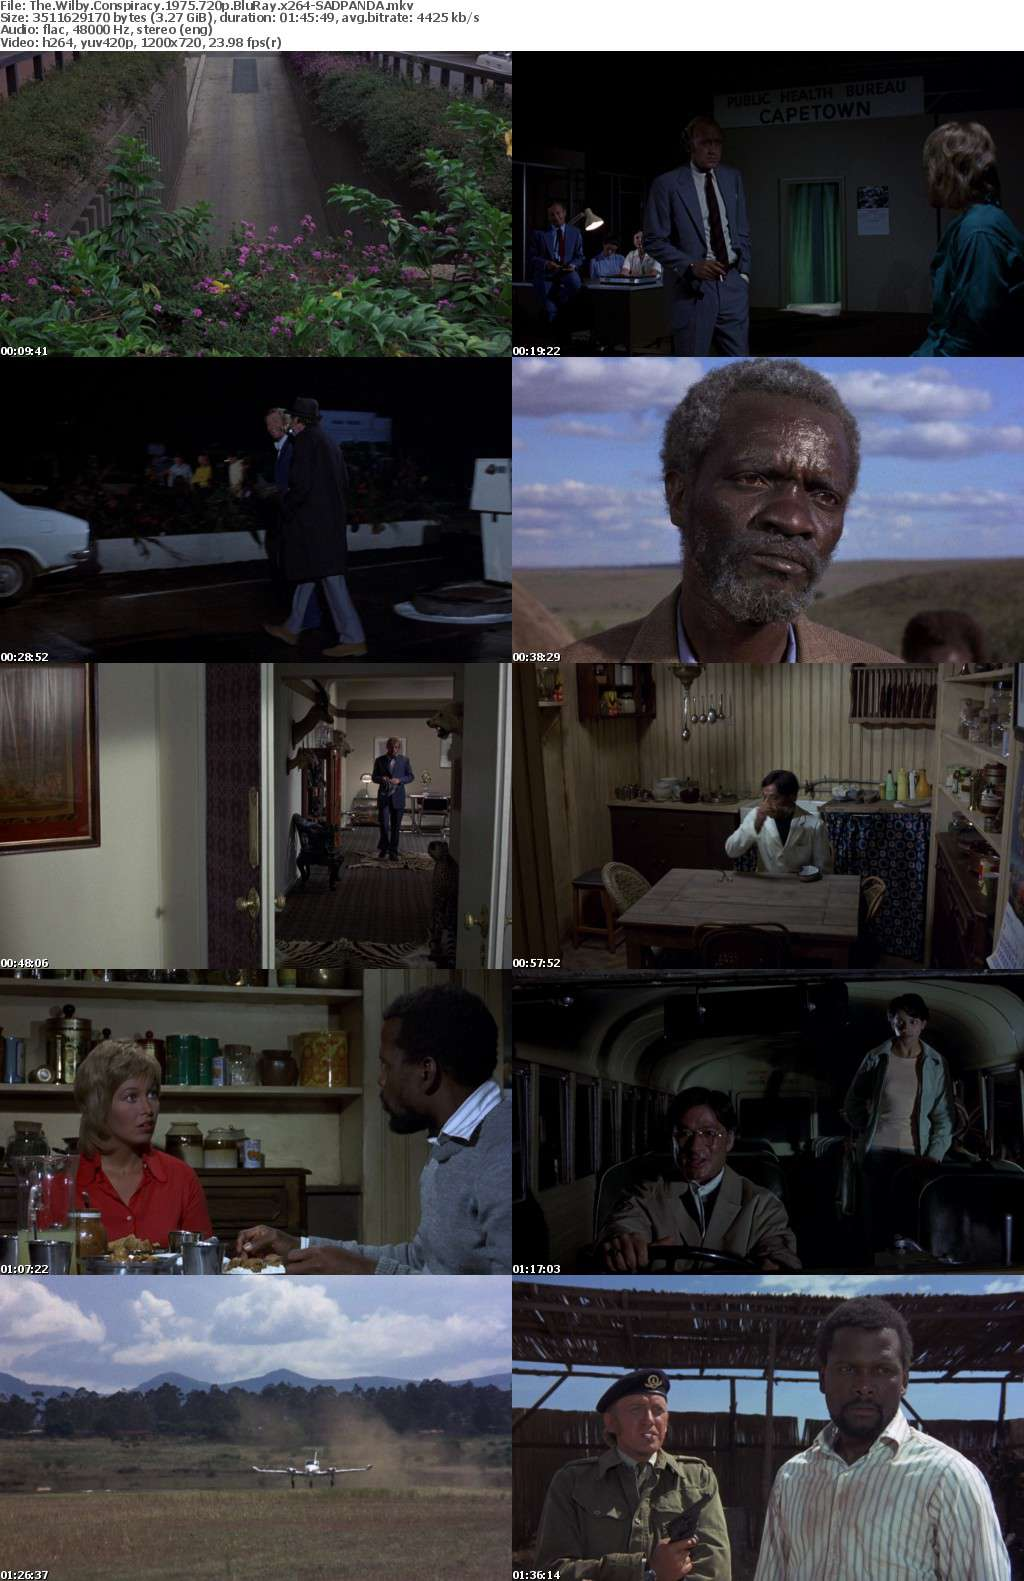 The Wilby Conspiracy 1975 720p BluRay x264-SADPANDA